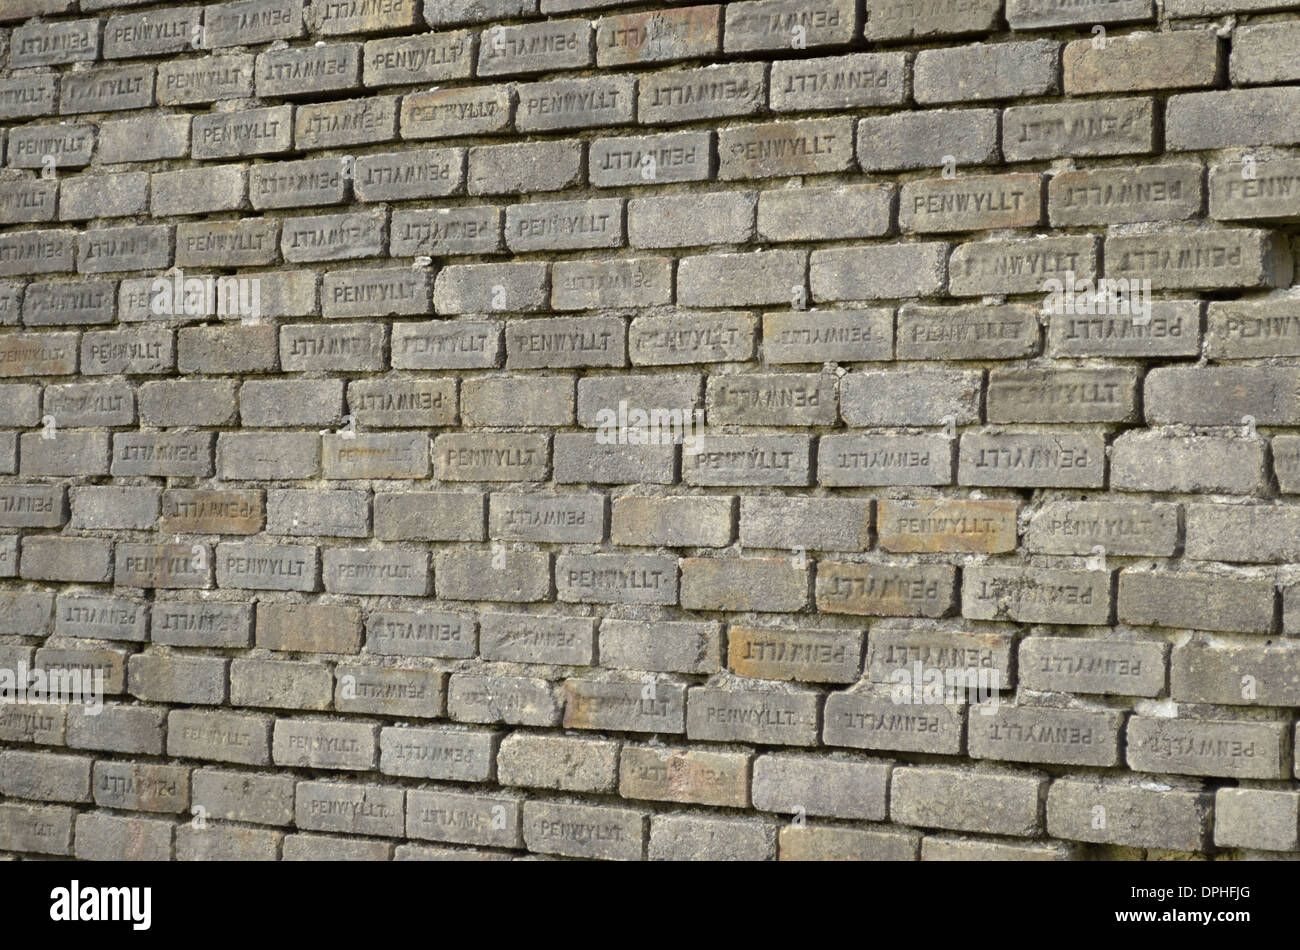 Refractory Brick Refractory Brick Stock Photos Refractory Brick Stock Images Alamy